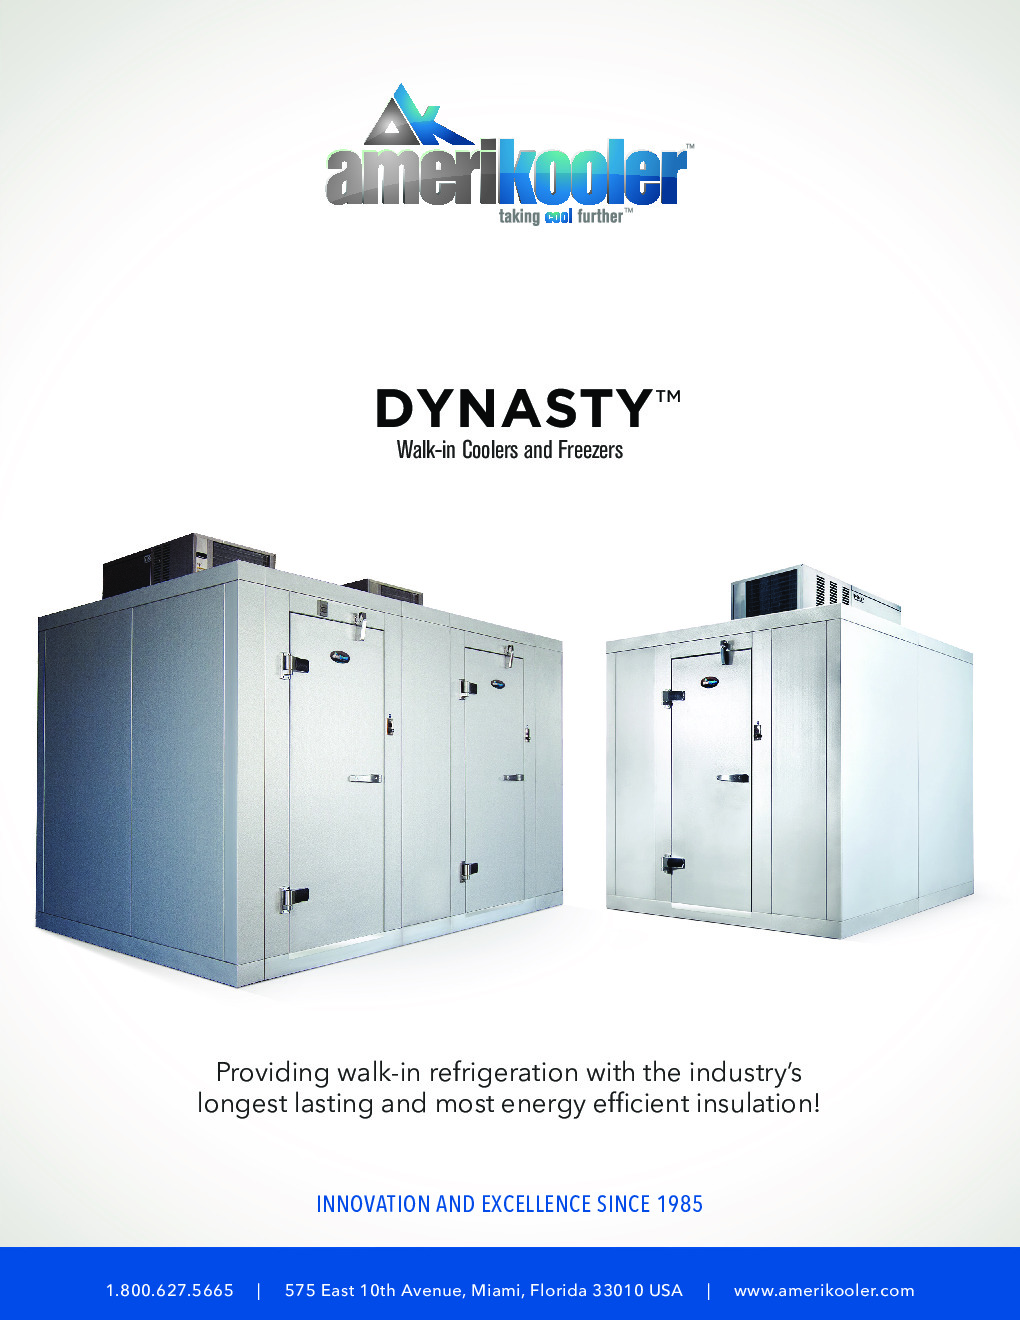 AmeriKooler DW061377N-4/9-RM 6' X 13' Walk-In Cooler, 9' L Cooler without Floor and 4' L Freezer, Remote